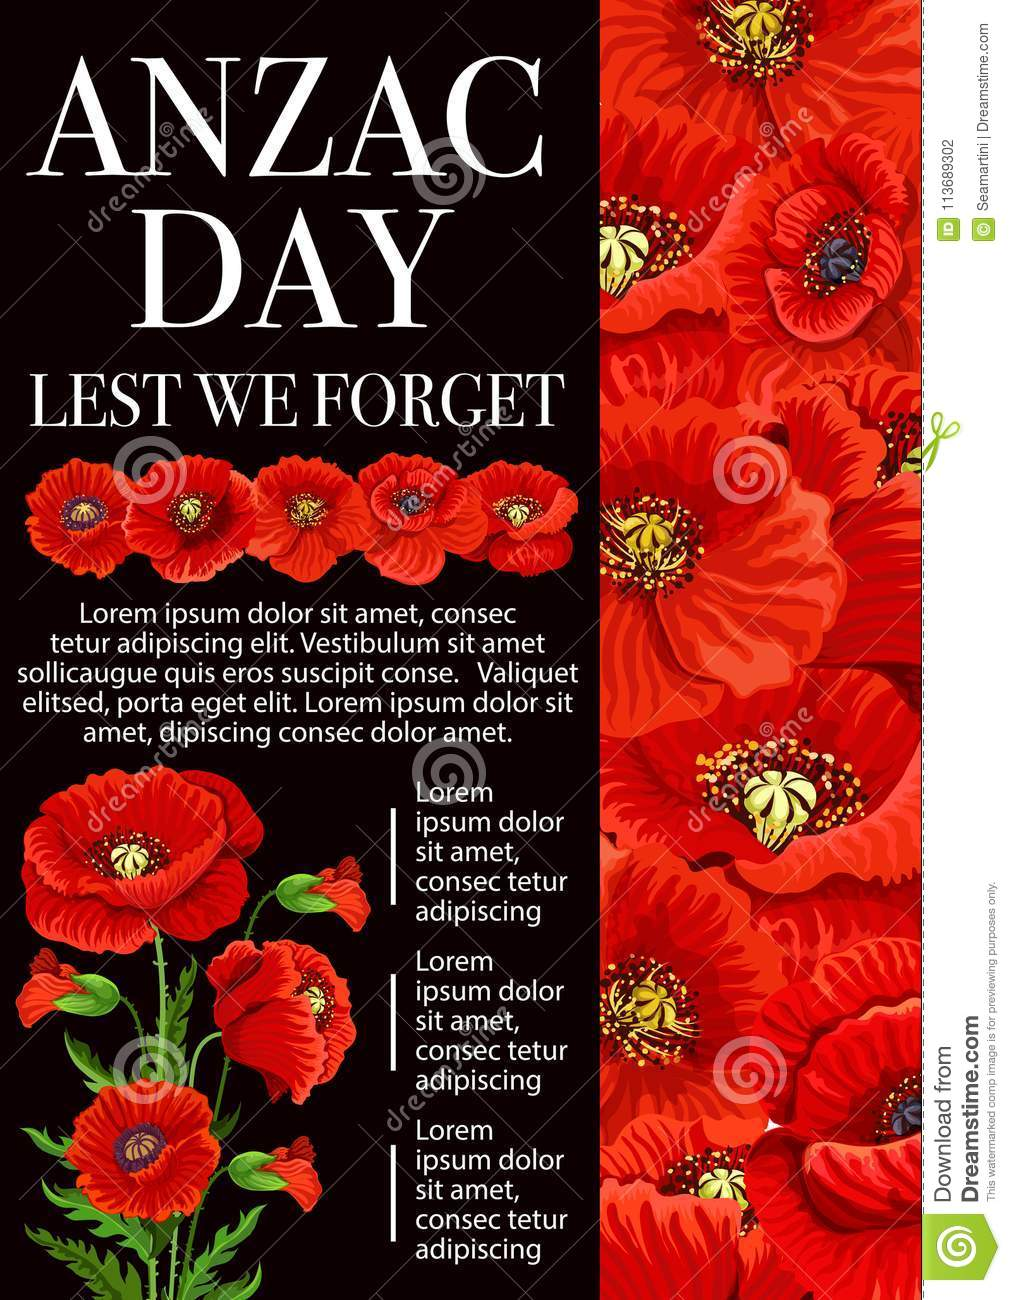 Anzac day poppy flower for lest we forget banner stock vector download anzac day poppy flower for lest we forget banner stock vector illustration of australian mightylinksfo